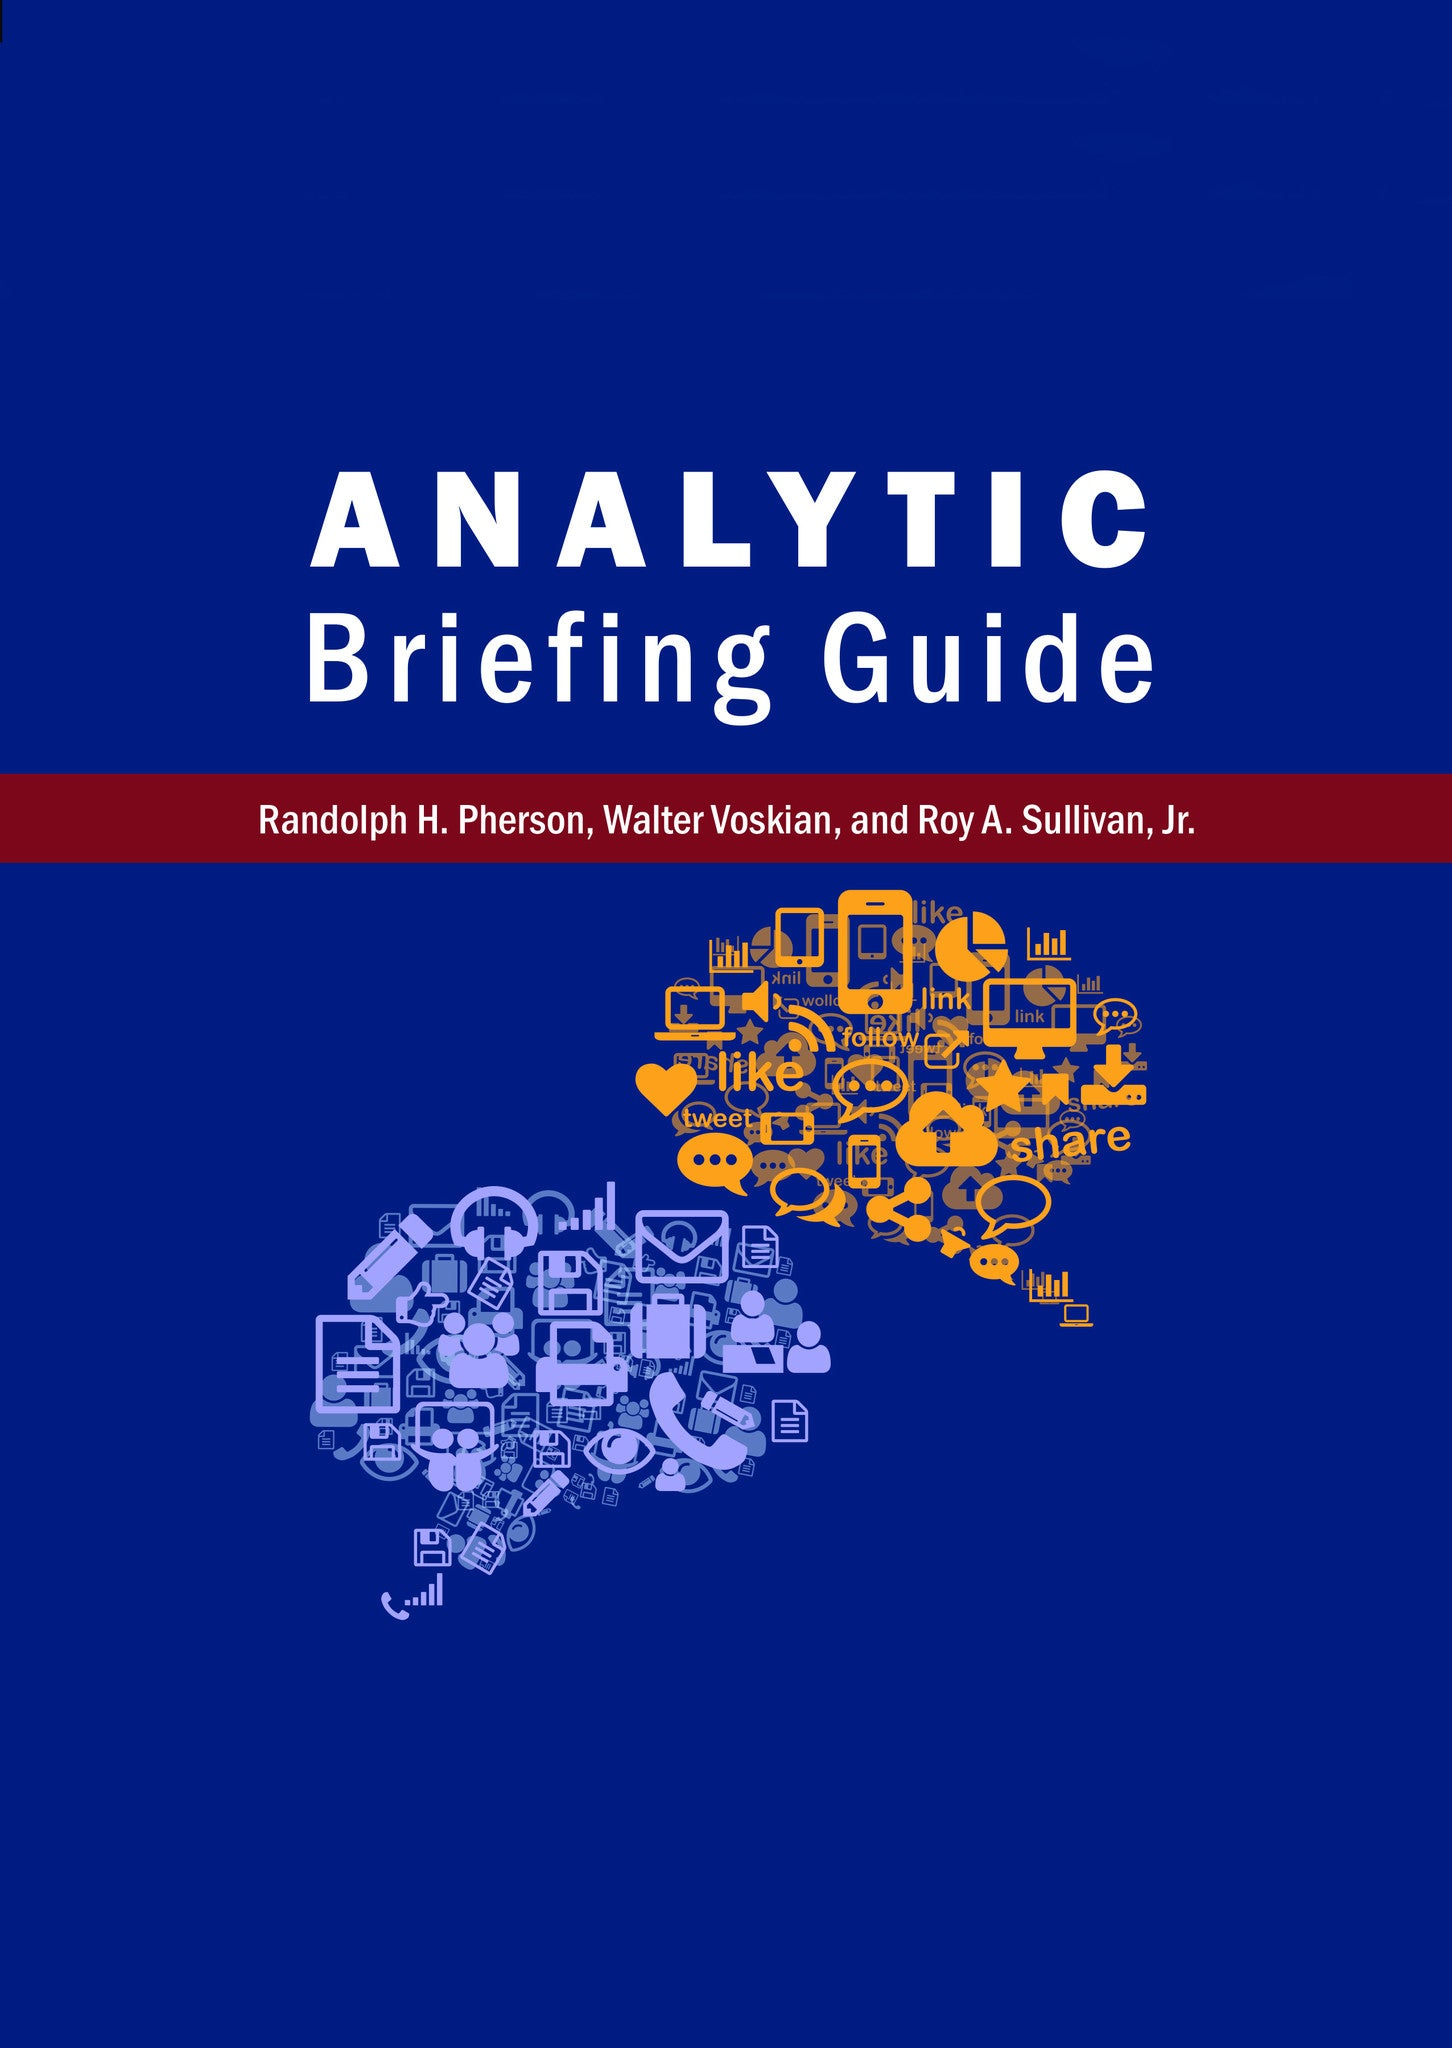 E-book: Analytic Briefing Guide